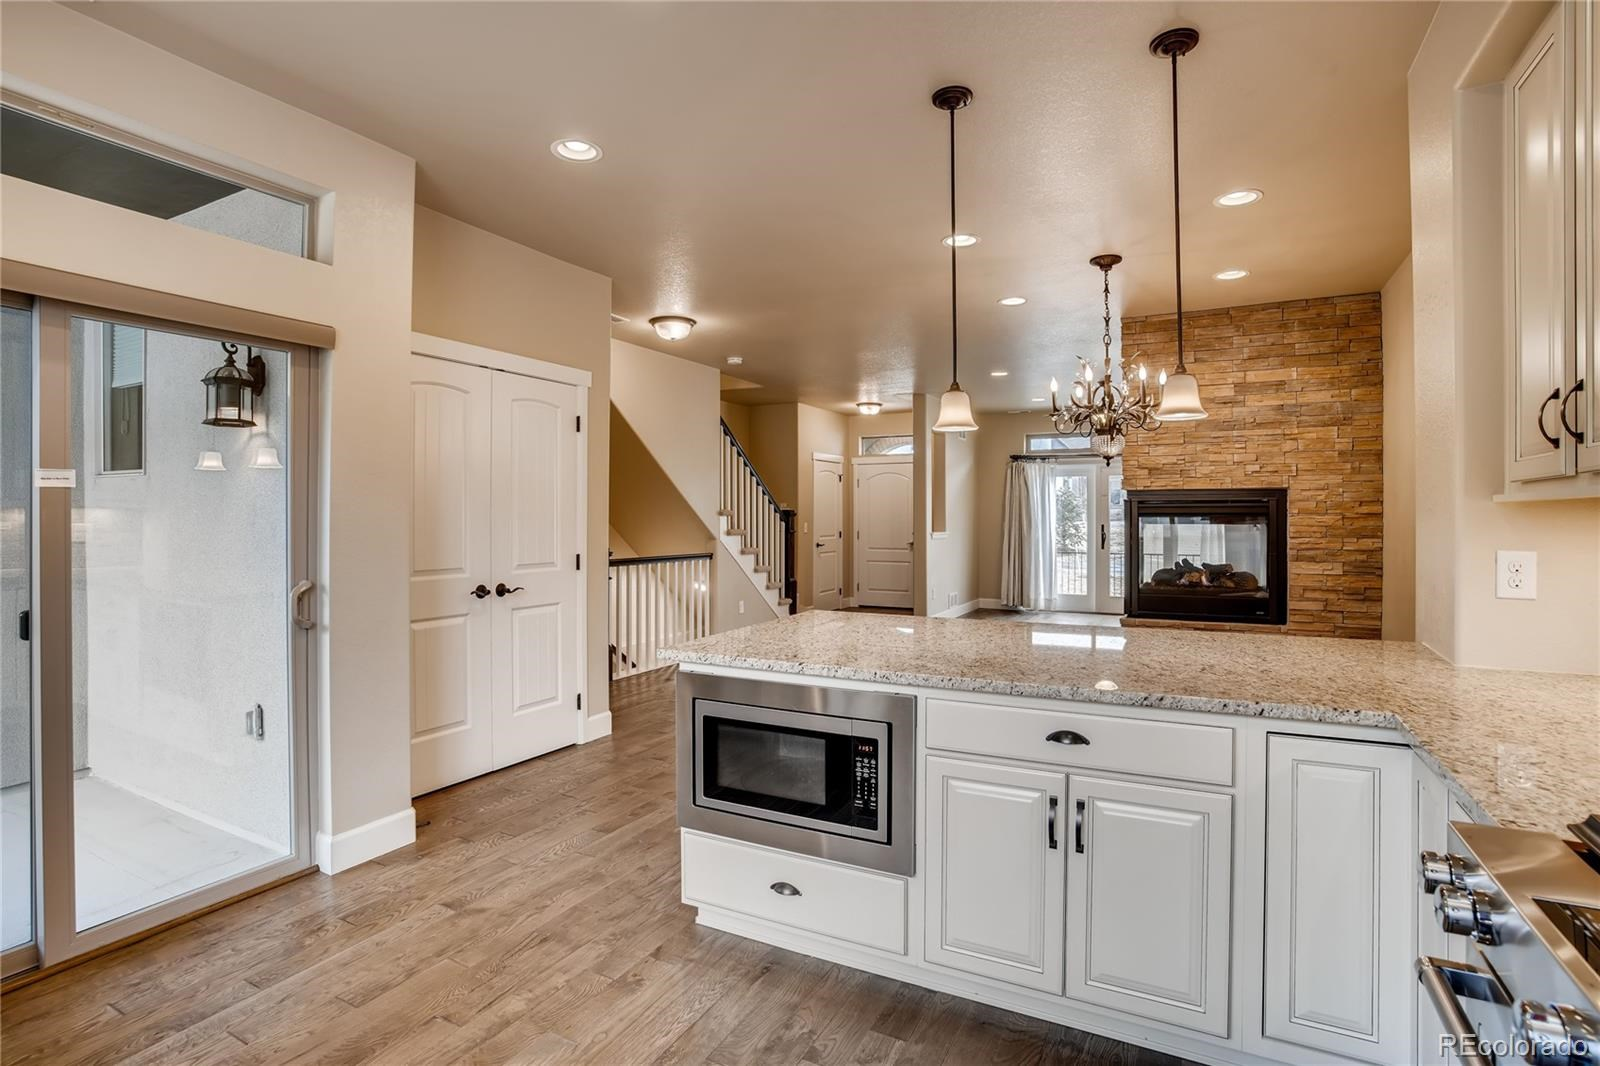 MLS# 7366960 - 9 - 15556 W Washburn Circle, Lakewood, CO 80228